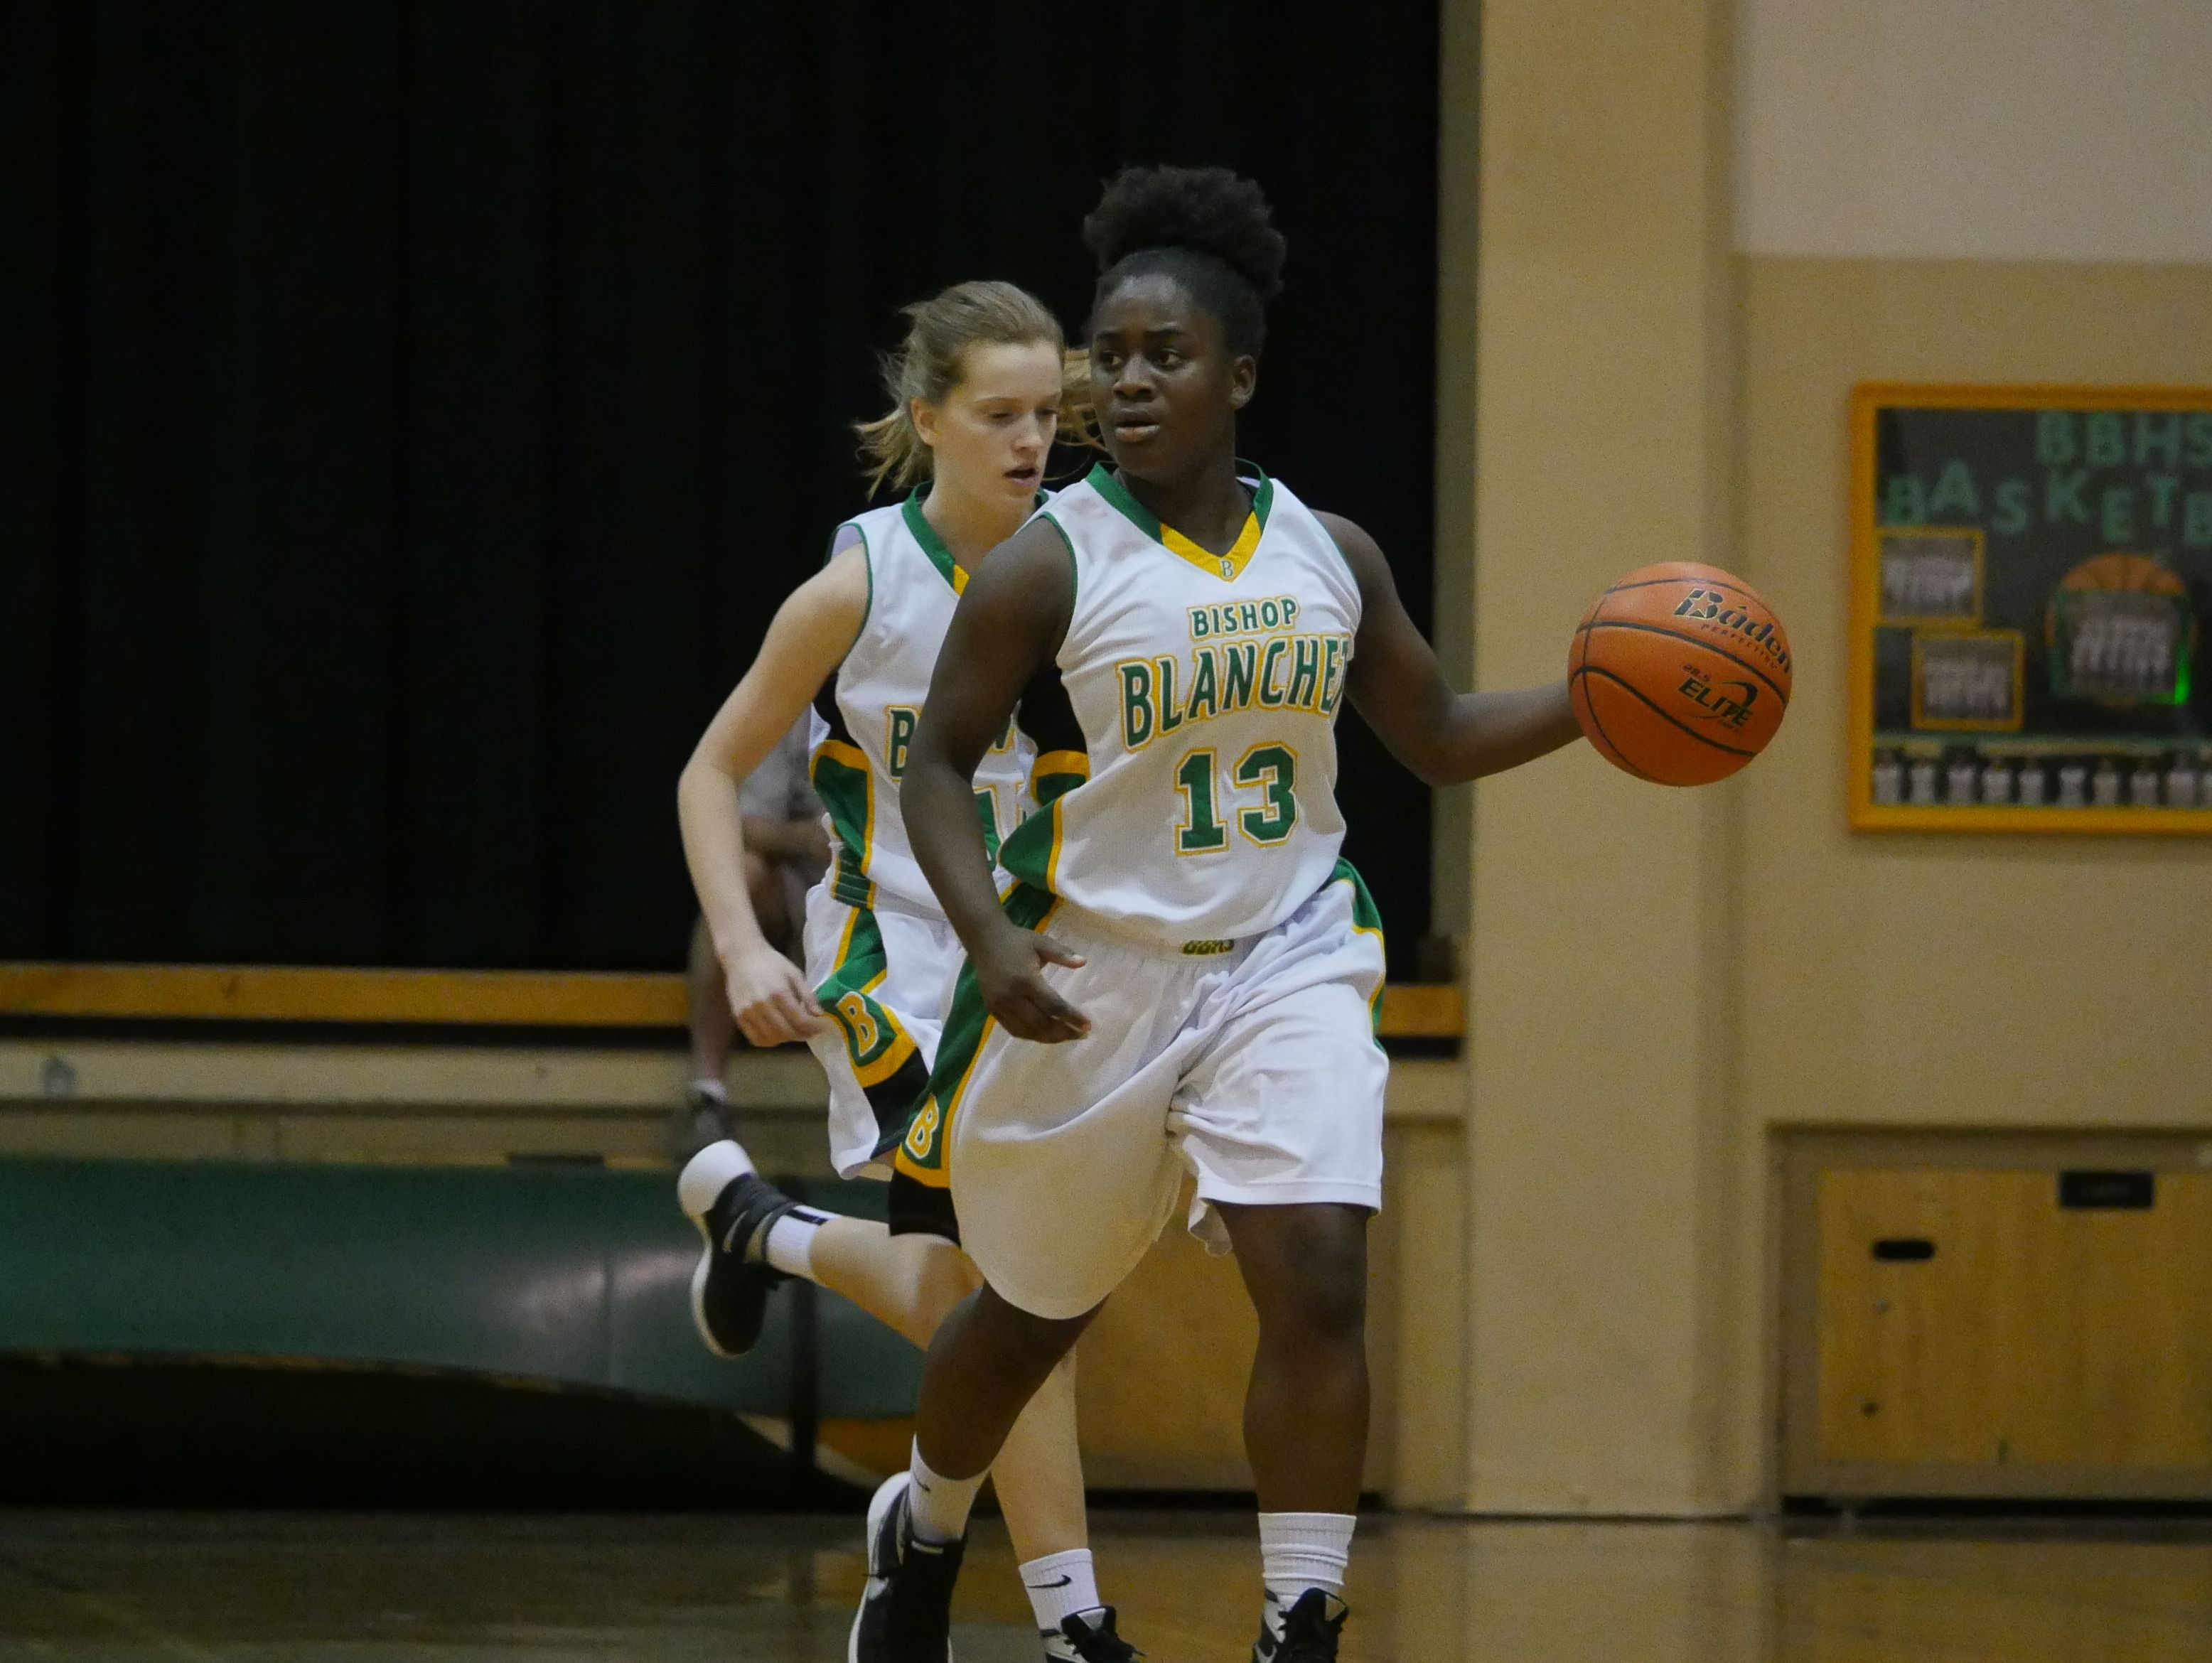 Bishop Blanchet's Taylor Chambers scored 11 points and dished out six assists against Juanita.